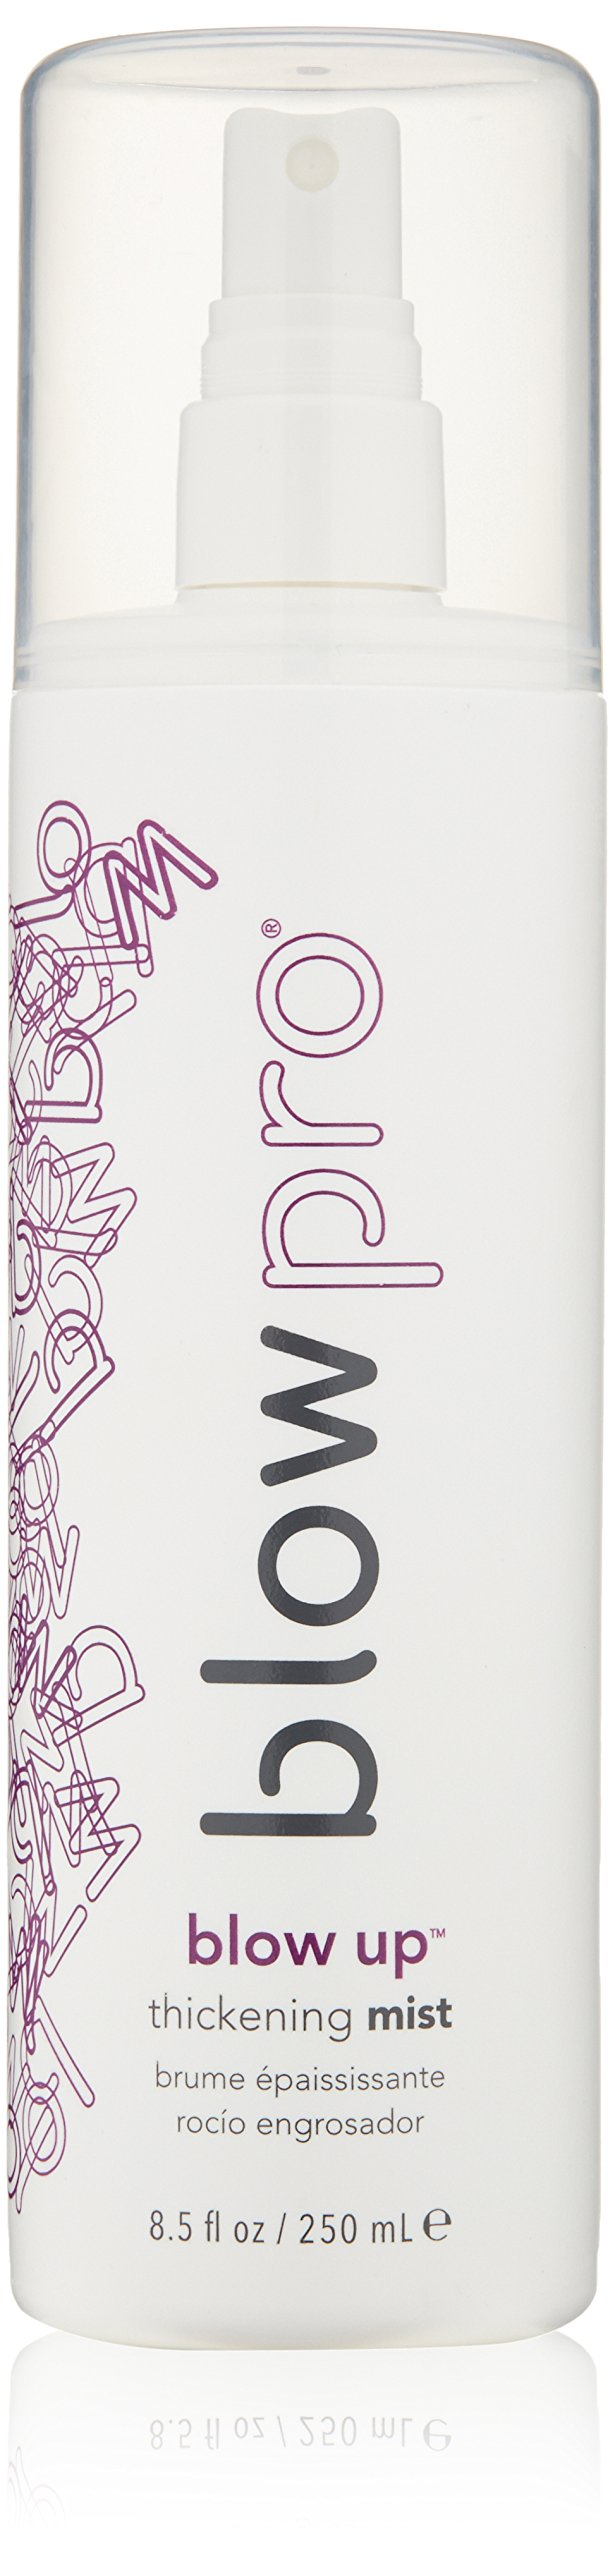 blowpro Blow Up Thickening Mist, 8.5 fl. oz.